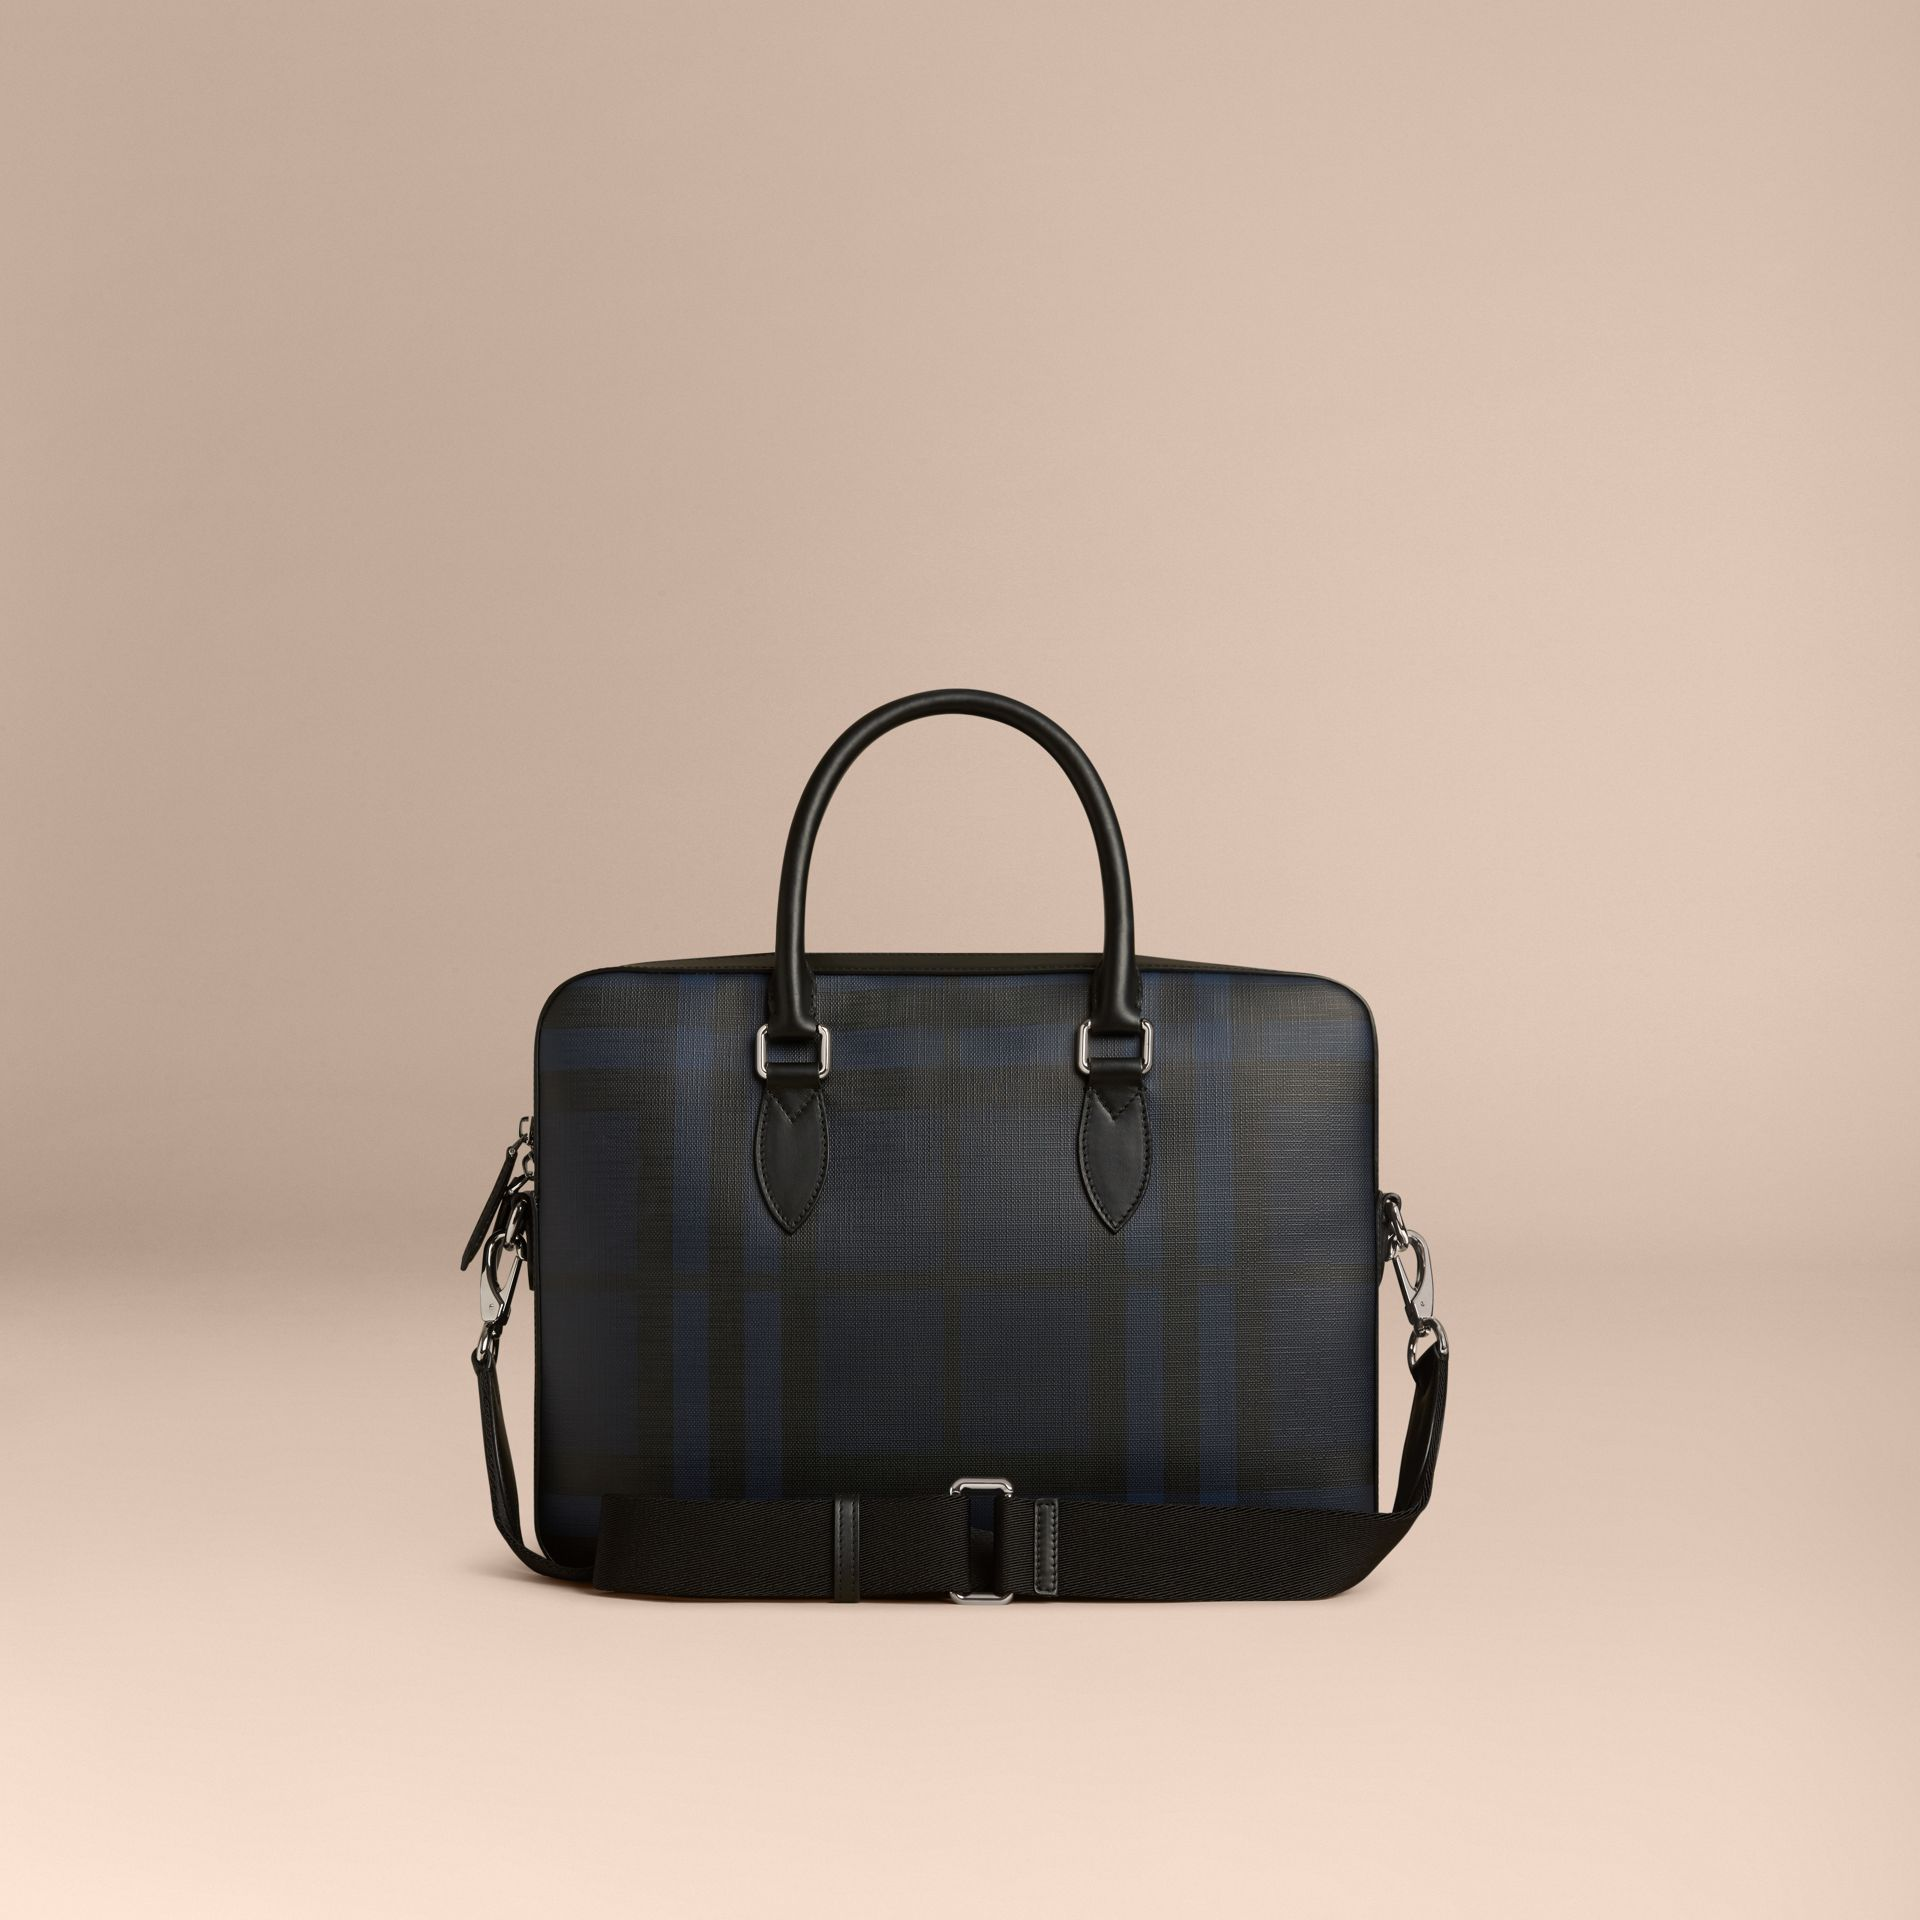 Medium Leather Trim London Check Briefcase Navy/black - gallery image 7